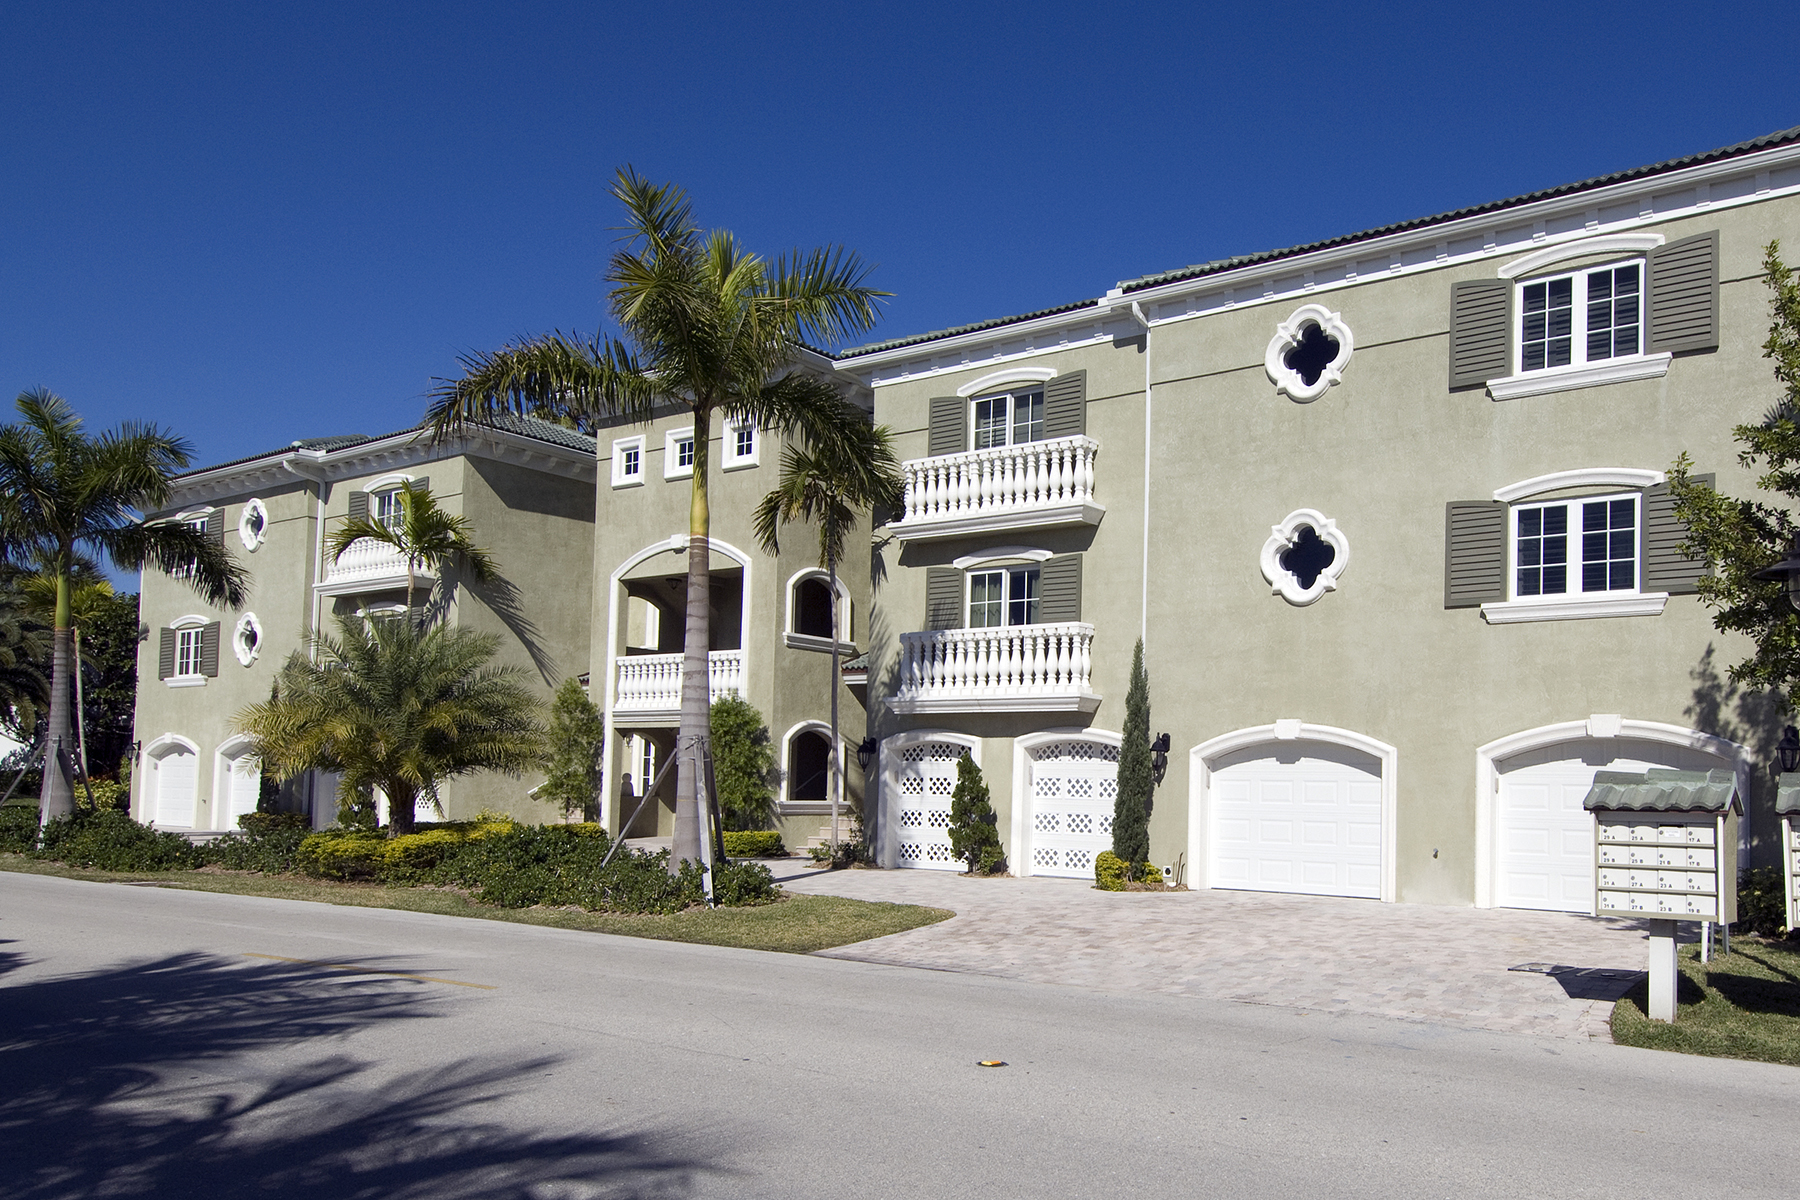 Condominium for Sale at Spacious Canalfront Condomium at Ocean Reef 9 Pumpkin Cay Road Unit B Key Largo, Florida, 33037 United States